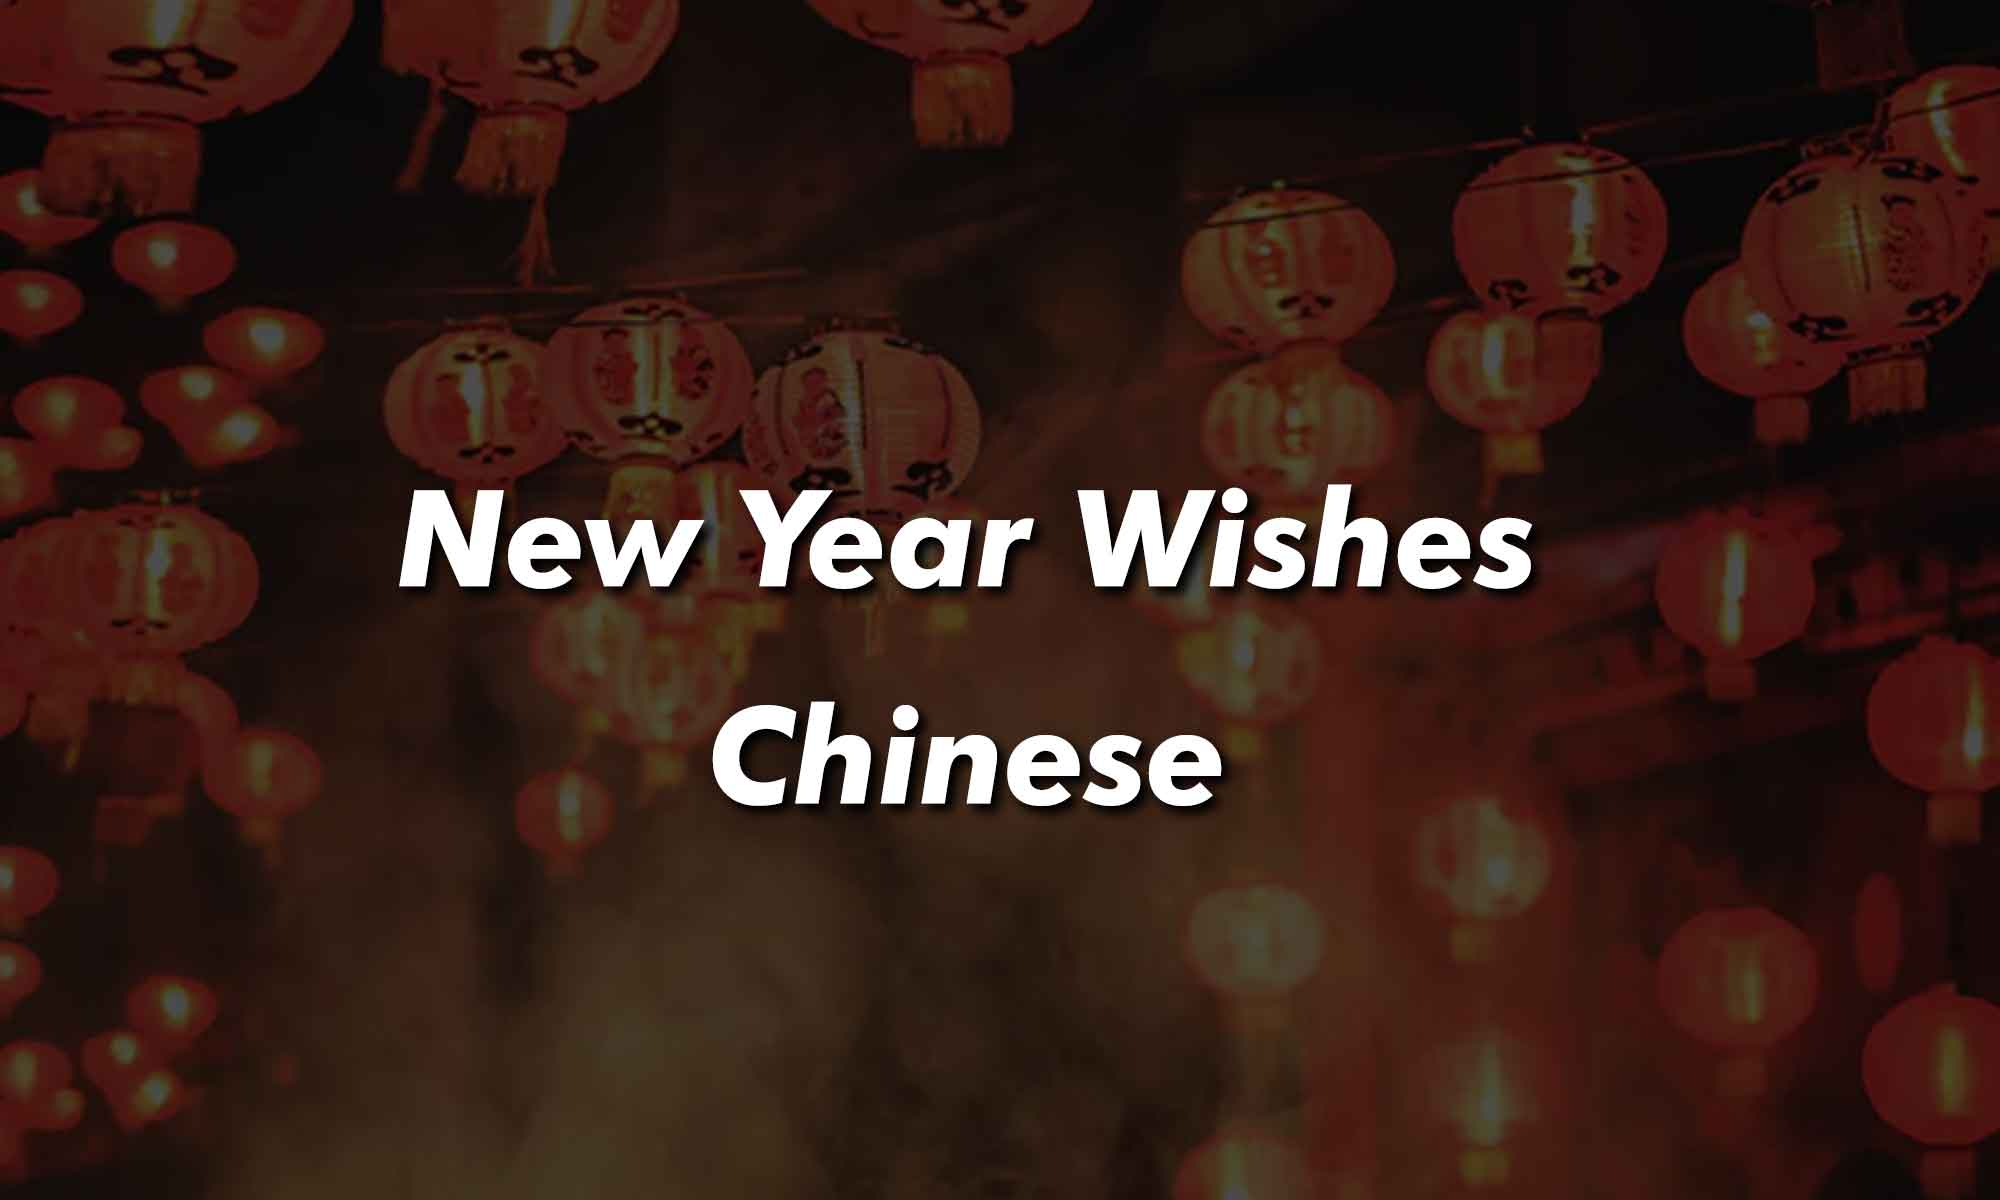 New Year Wishes Chinese